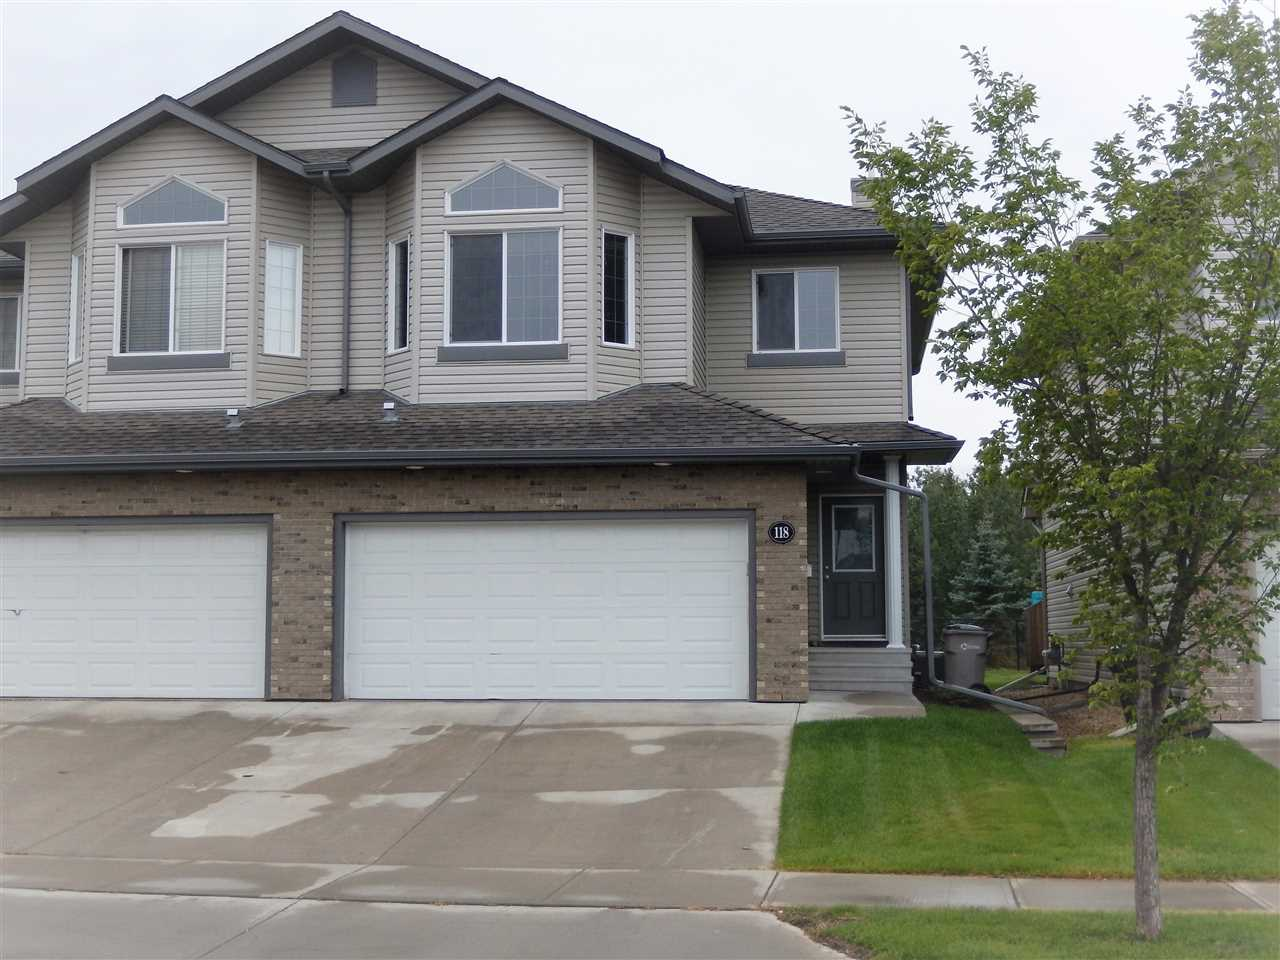 MR PARTICULAR LIVES HERE!! This home shows a 10 PLUS!... the LIVING RM is OPEN to the 2nd floor, creating lots of light. Plenty of RENOS (last 2 yrs) in this 3 BEDR, 2.5 BATH home incL: CENTRAL AIR, SUMP PUMP (2016) ALL PAINT, HI GRADE LAMINATE on main & VINYL LAMINATE in all 3 bathrs, 3 NEW LOW FLUSH TOILETS, SHELVING UPGRADES in closets, white ARBORITE LINED DRAWERS, NEW BLINDS on main, all the SMOKE/Co2 DETECTORS  were replaced & GARAGE (19x22 deep approx) was FINISHED NICELY & has NEW GARAGE OPENER. Home is plumbed for CENTRAL VAC. The STAIRW WALL is open to let more natural light down the stairs & into the foyer.  Comes with STAINL APPL & FRONT LOAD WASHER/DRYER (2yrs old).  BIG MASTR (plenty of N.facing windows) & the ENSUITE has a LARGE WALK-IN SHOWER with SEAT...9 FT CEILINGS on MAIN & in basem.  The SOUTH FACING DECK with GAS OUTLET has a PRIVACY WALL & the yard backs onto GREENSPACE & TRAILS....NO LAWN CUTTING OR SHOVELING SNOW  and no worries about MAINTAINING OUTSIDE OF HOME.  Sell with Pride!